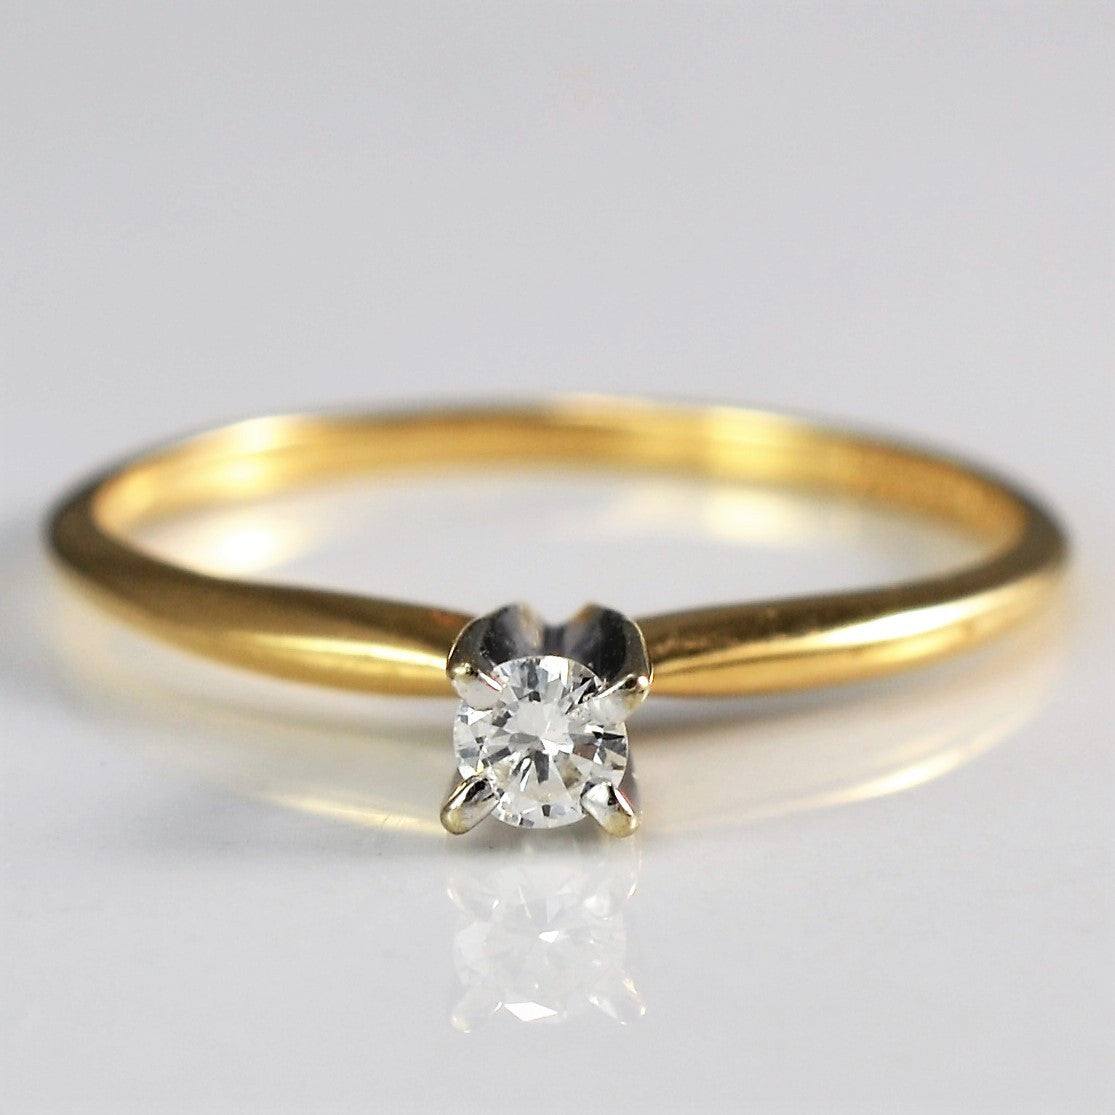 High Set Thin Tapered Band Solitaire | 0.08 ct, SZ 5.75 |